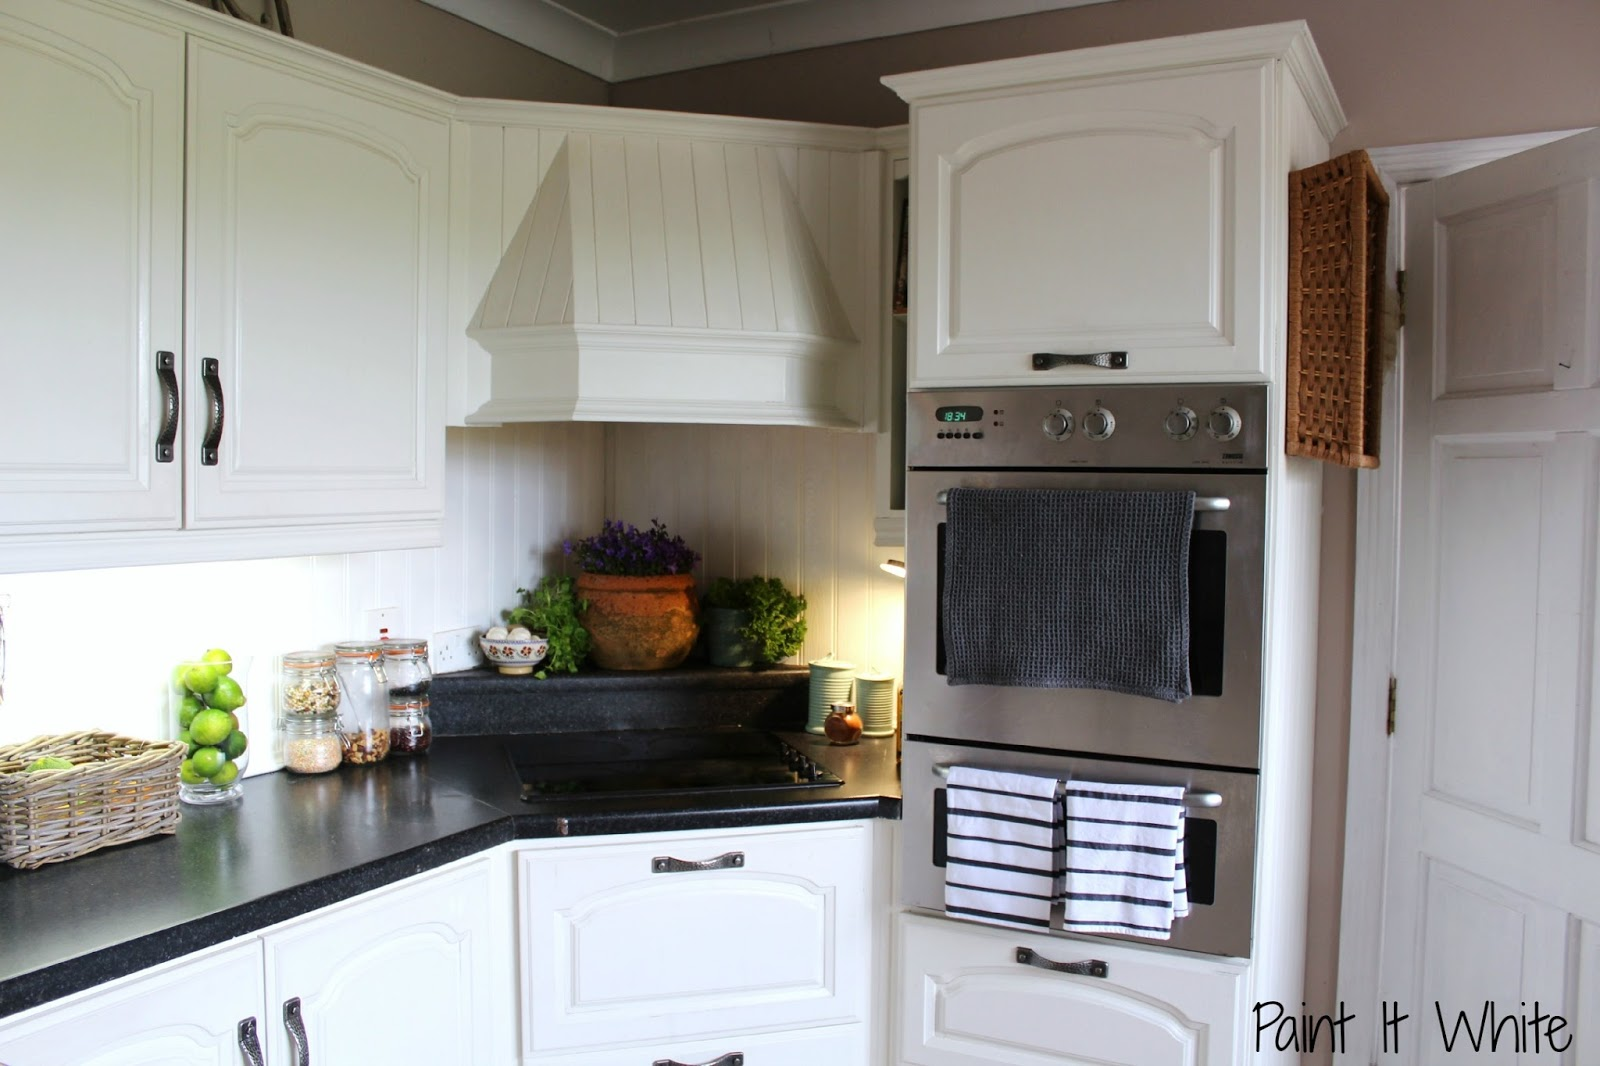 14 Annie Sloan chalk paint in Old White wood kitchen cabinet update Rustic accents for & Remodelaholic | Beautiful White Kitchen Update (with chalk paint!)